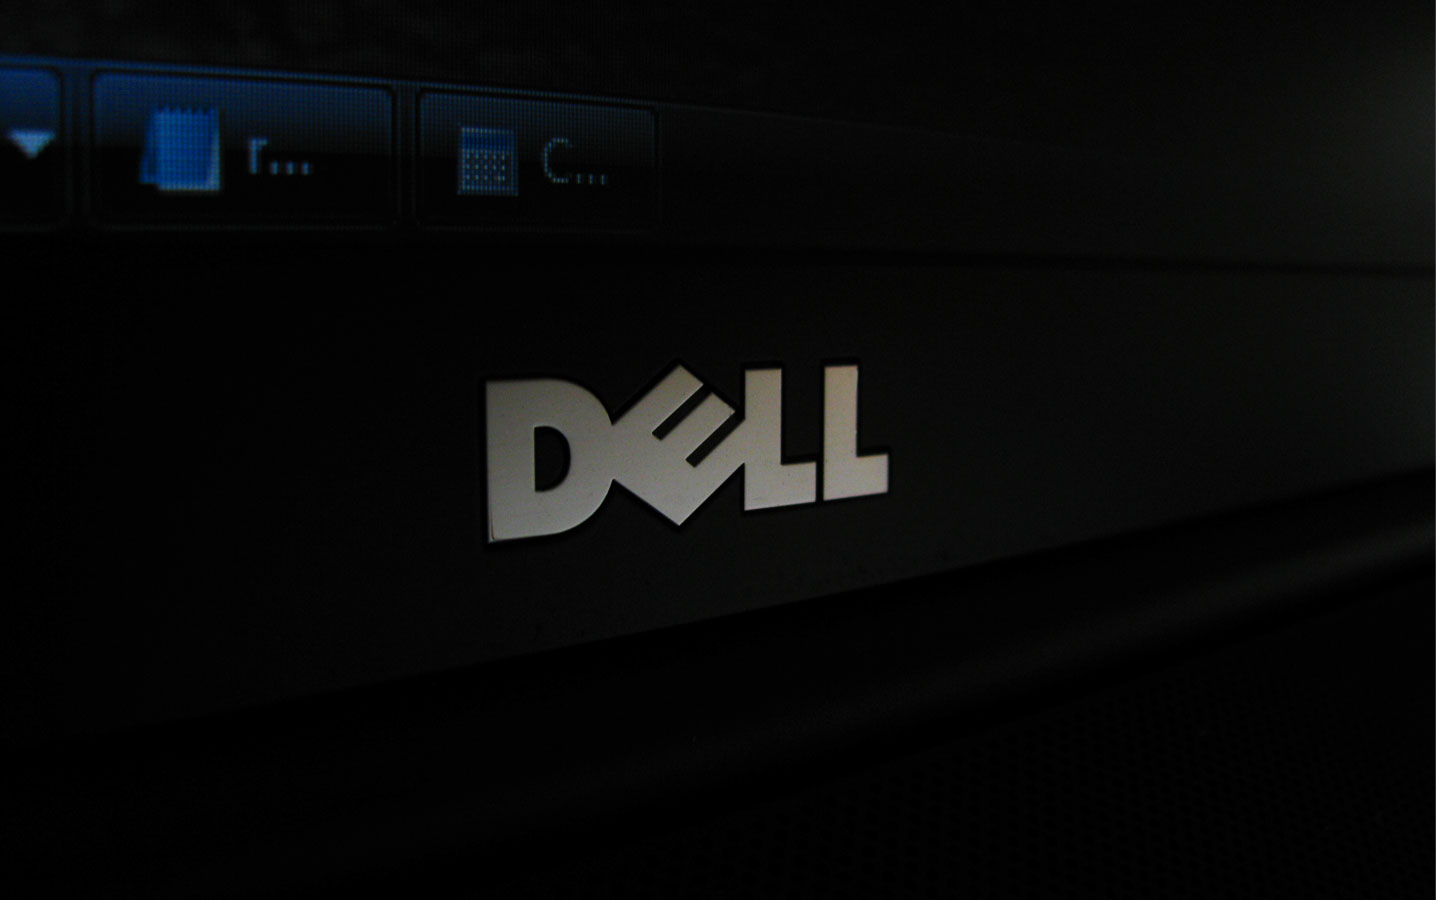 dell wallpapers inbox